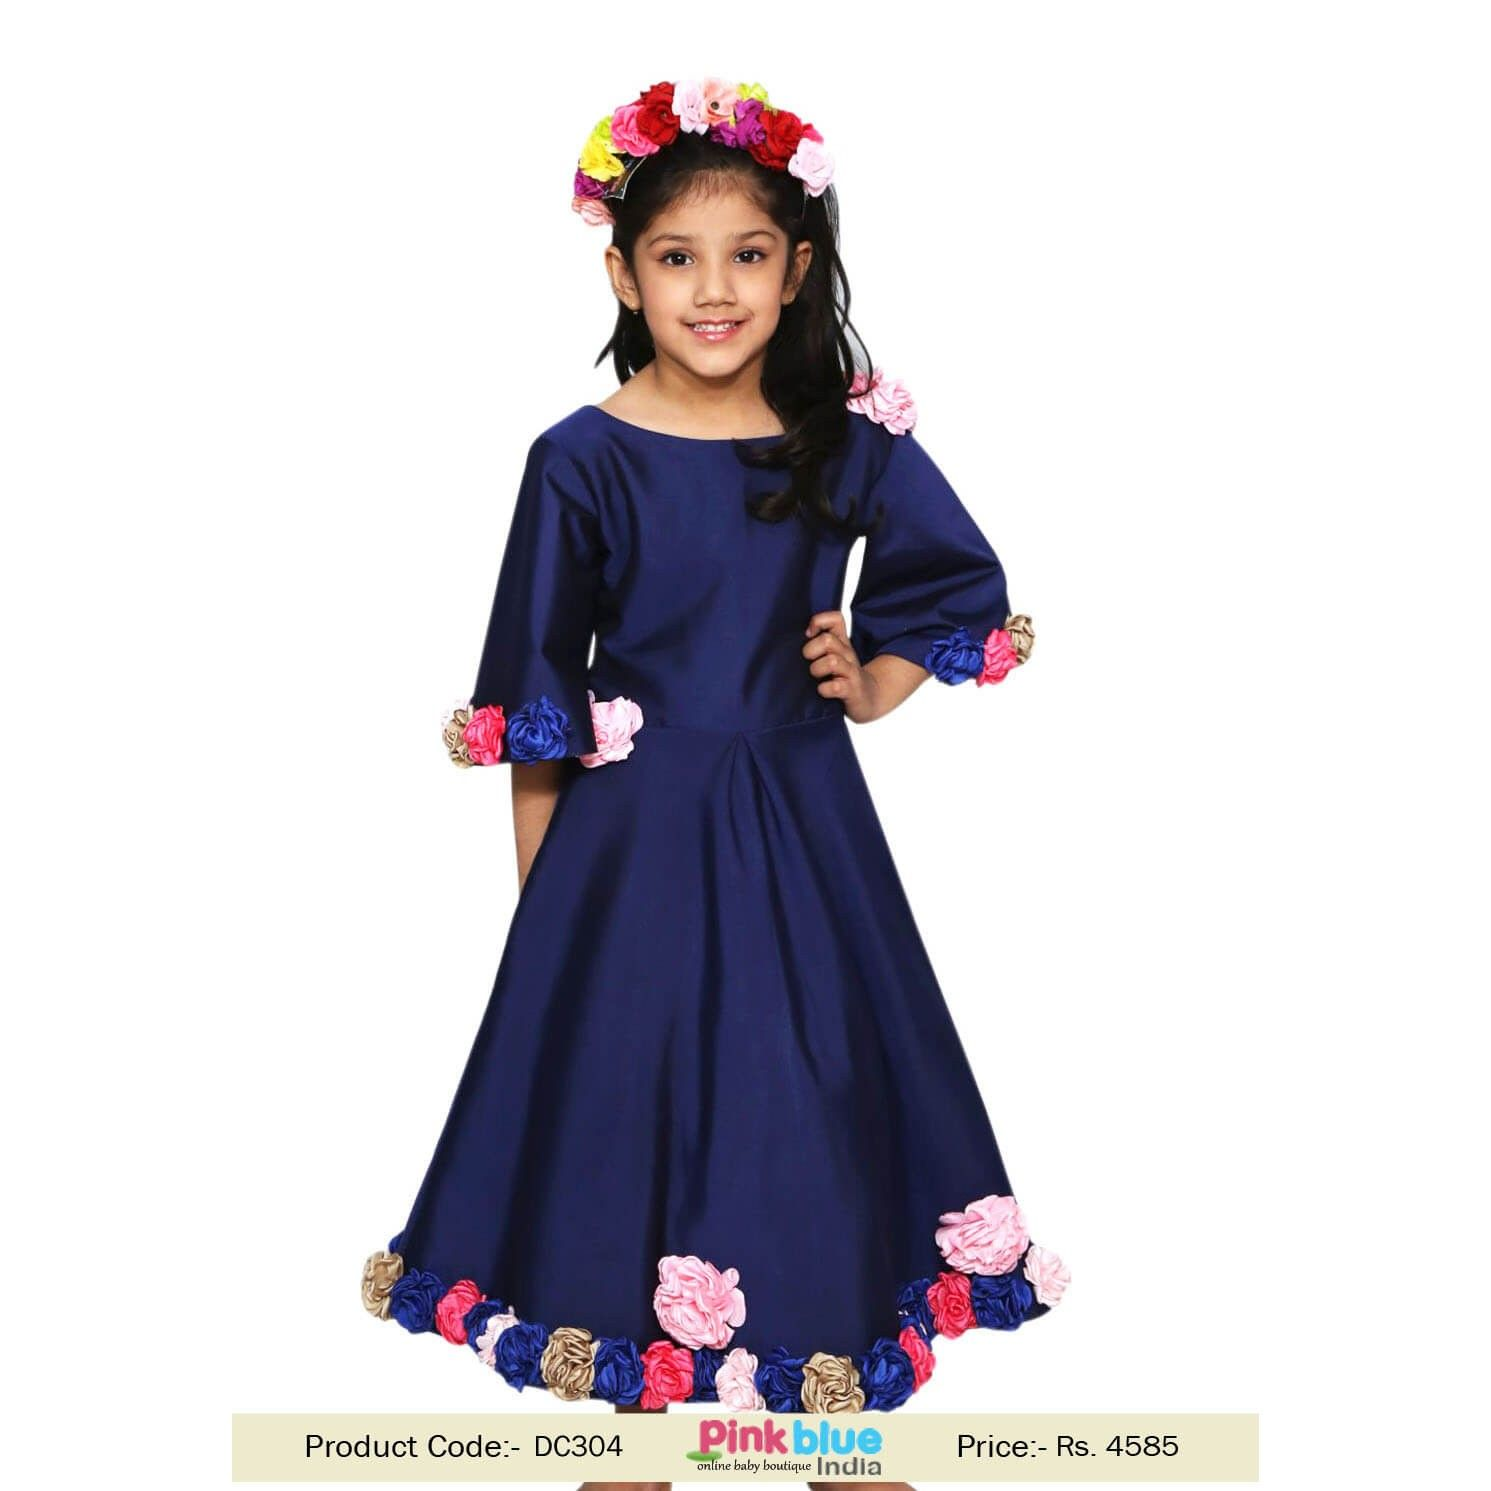 35fdd1f37ae0 Blue Girls Party Wear Gown | Kids Gown For Birthday Functions | Custom Made  Princess Long